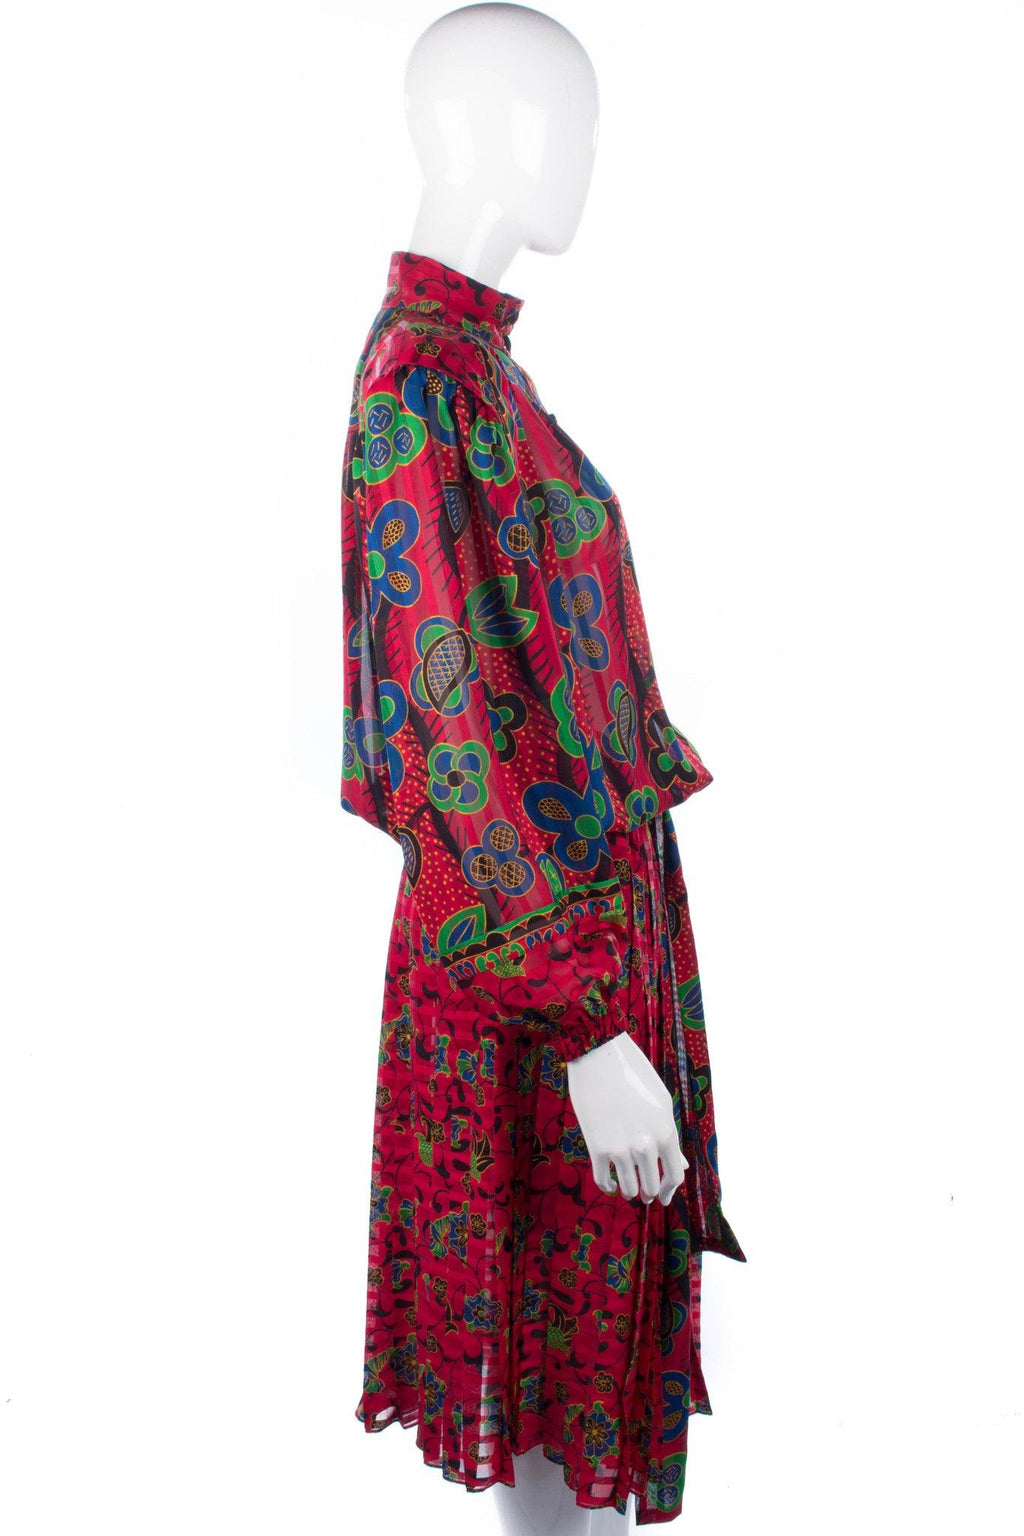 Vintage 1980's Kanga Collection by Dale Tryon London dress